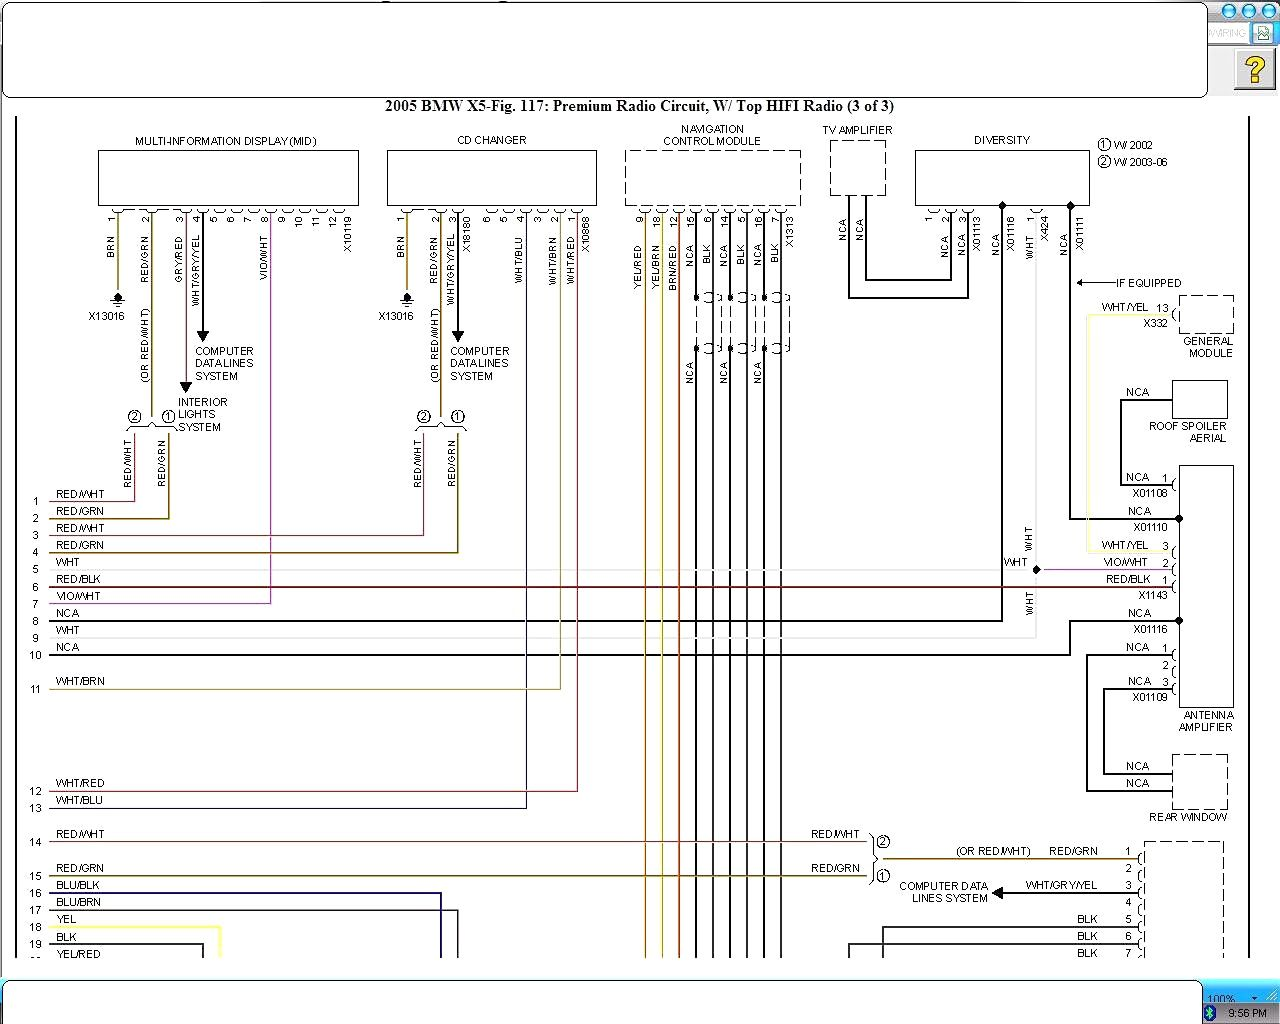 wiring diagram bmw x5 wiring diagram schemes bmw e36 wiring diagram bmw e38 wiring diagram [ 1280 x 1024 Pixel ]